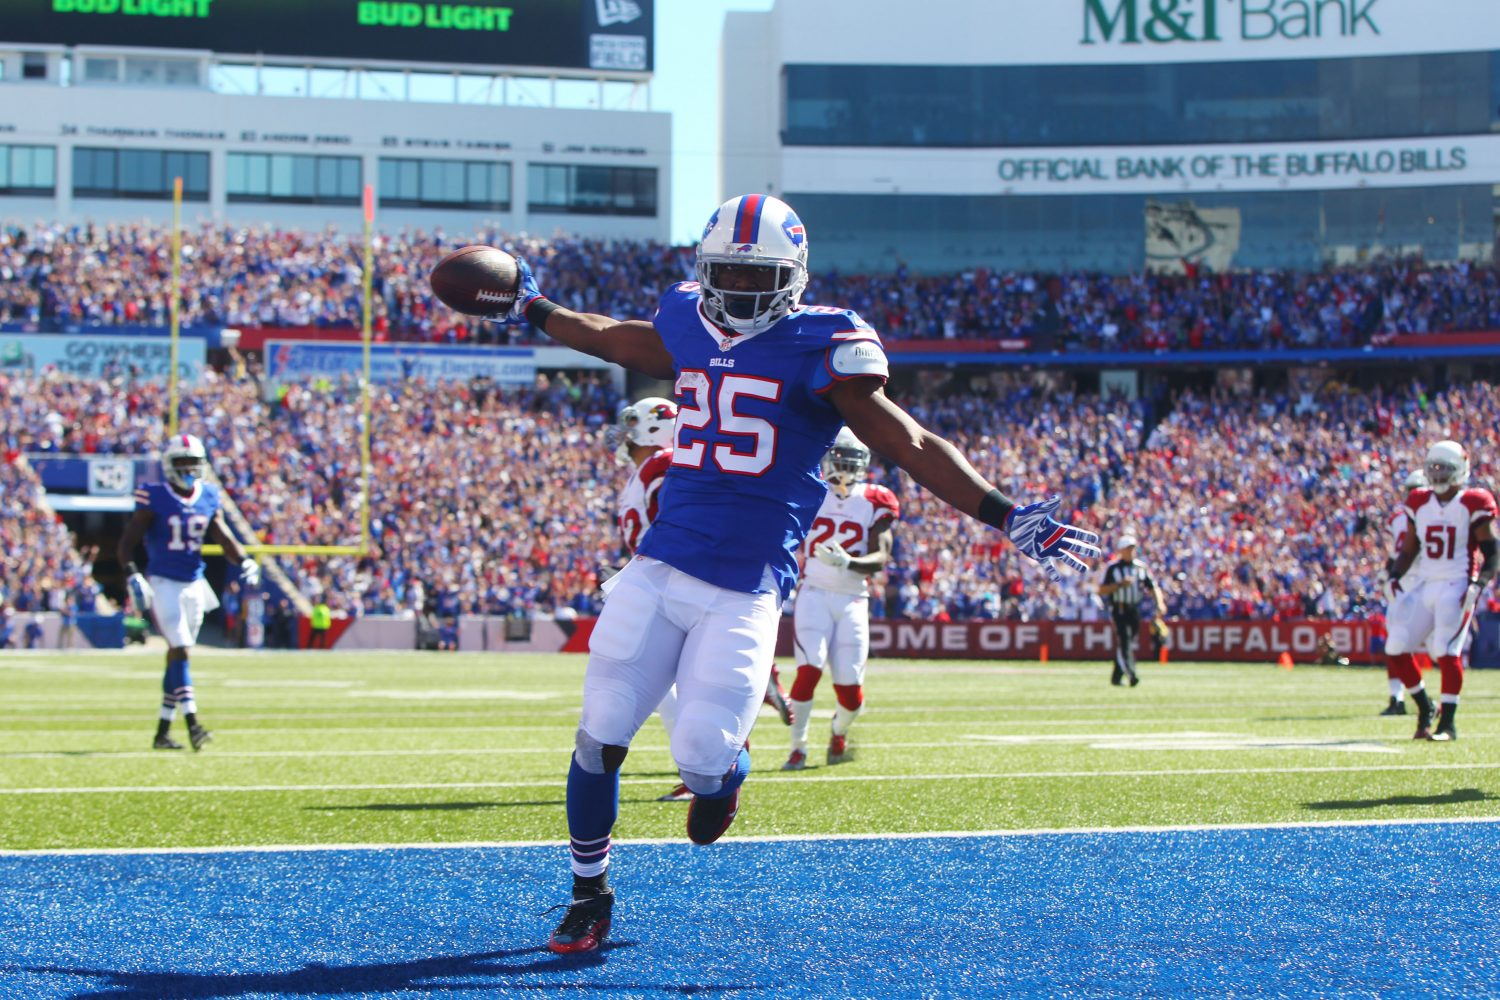 Buffalo Bills running back LeSean McCoy runs into the end zone for a touchdown against the Arizona Cardinals Sunday during the first quarter at New Era Field. (Mark Mulville/Buffalo News)